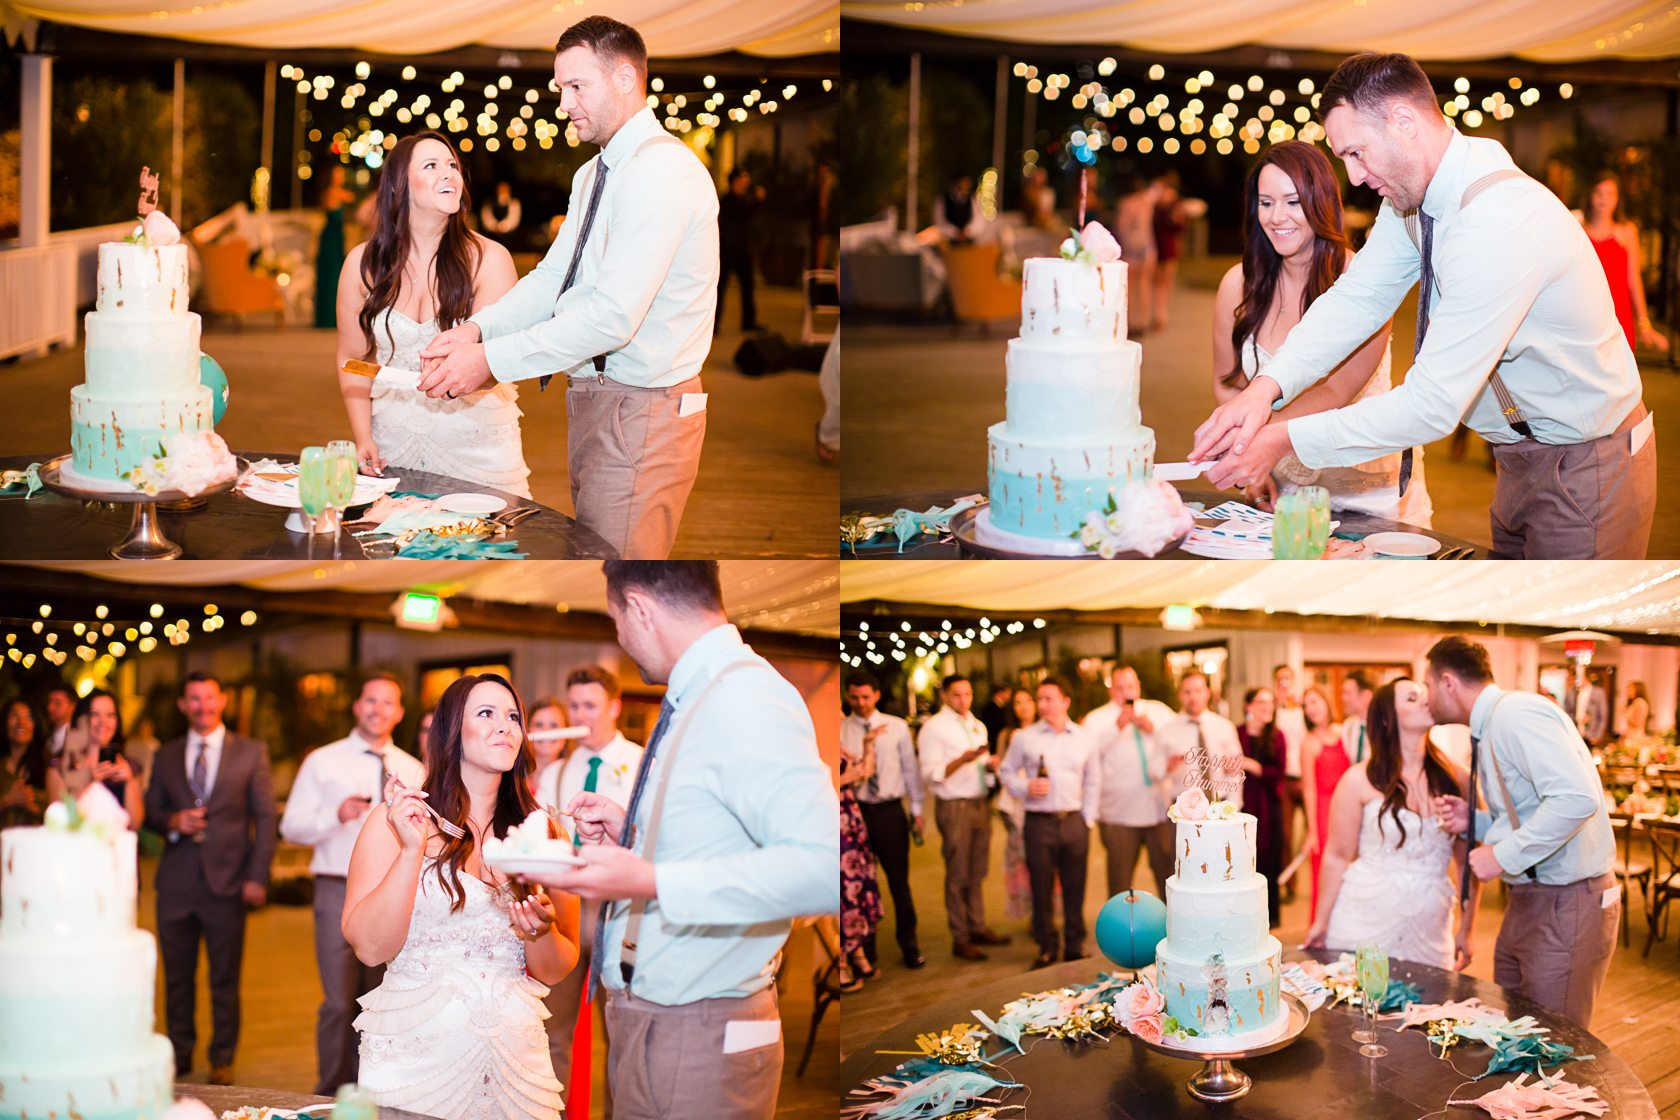 The_Printed_Palette_Wedding_at_Calamigos_Ranch_127.jpg